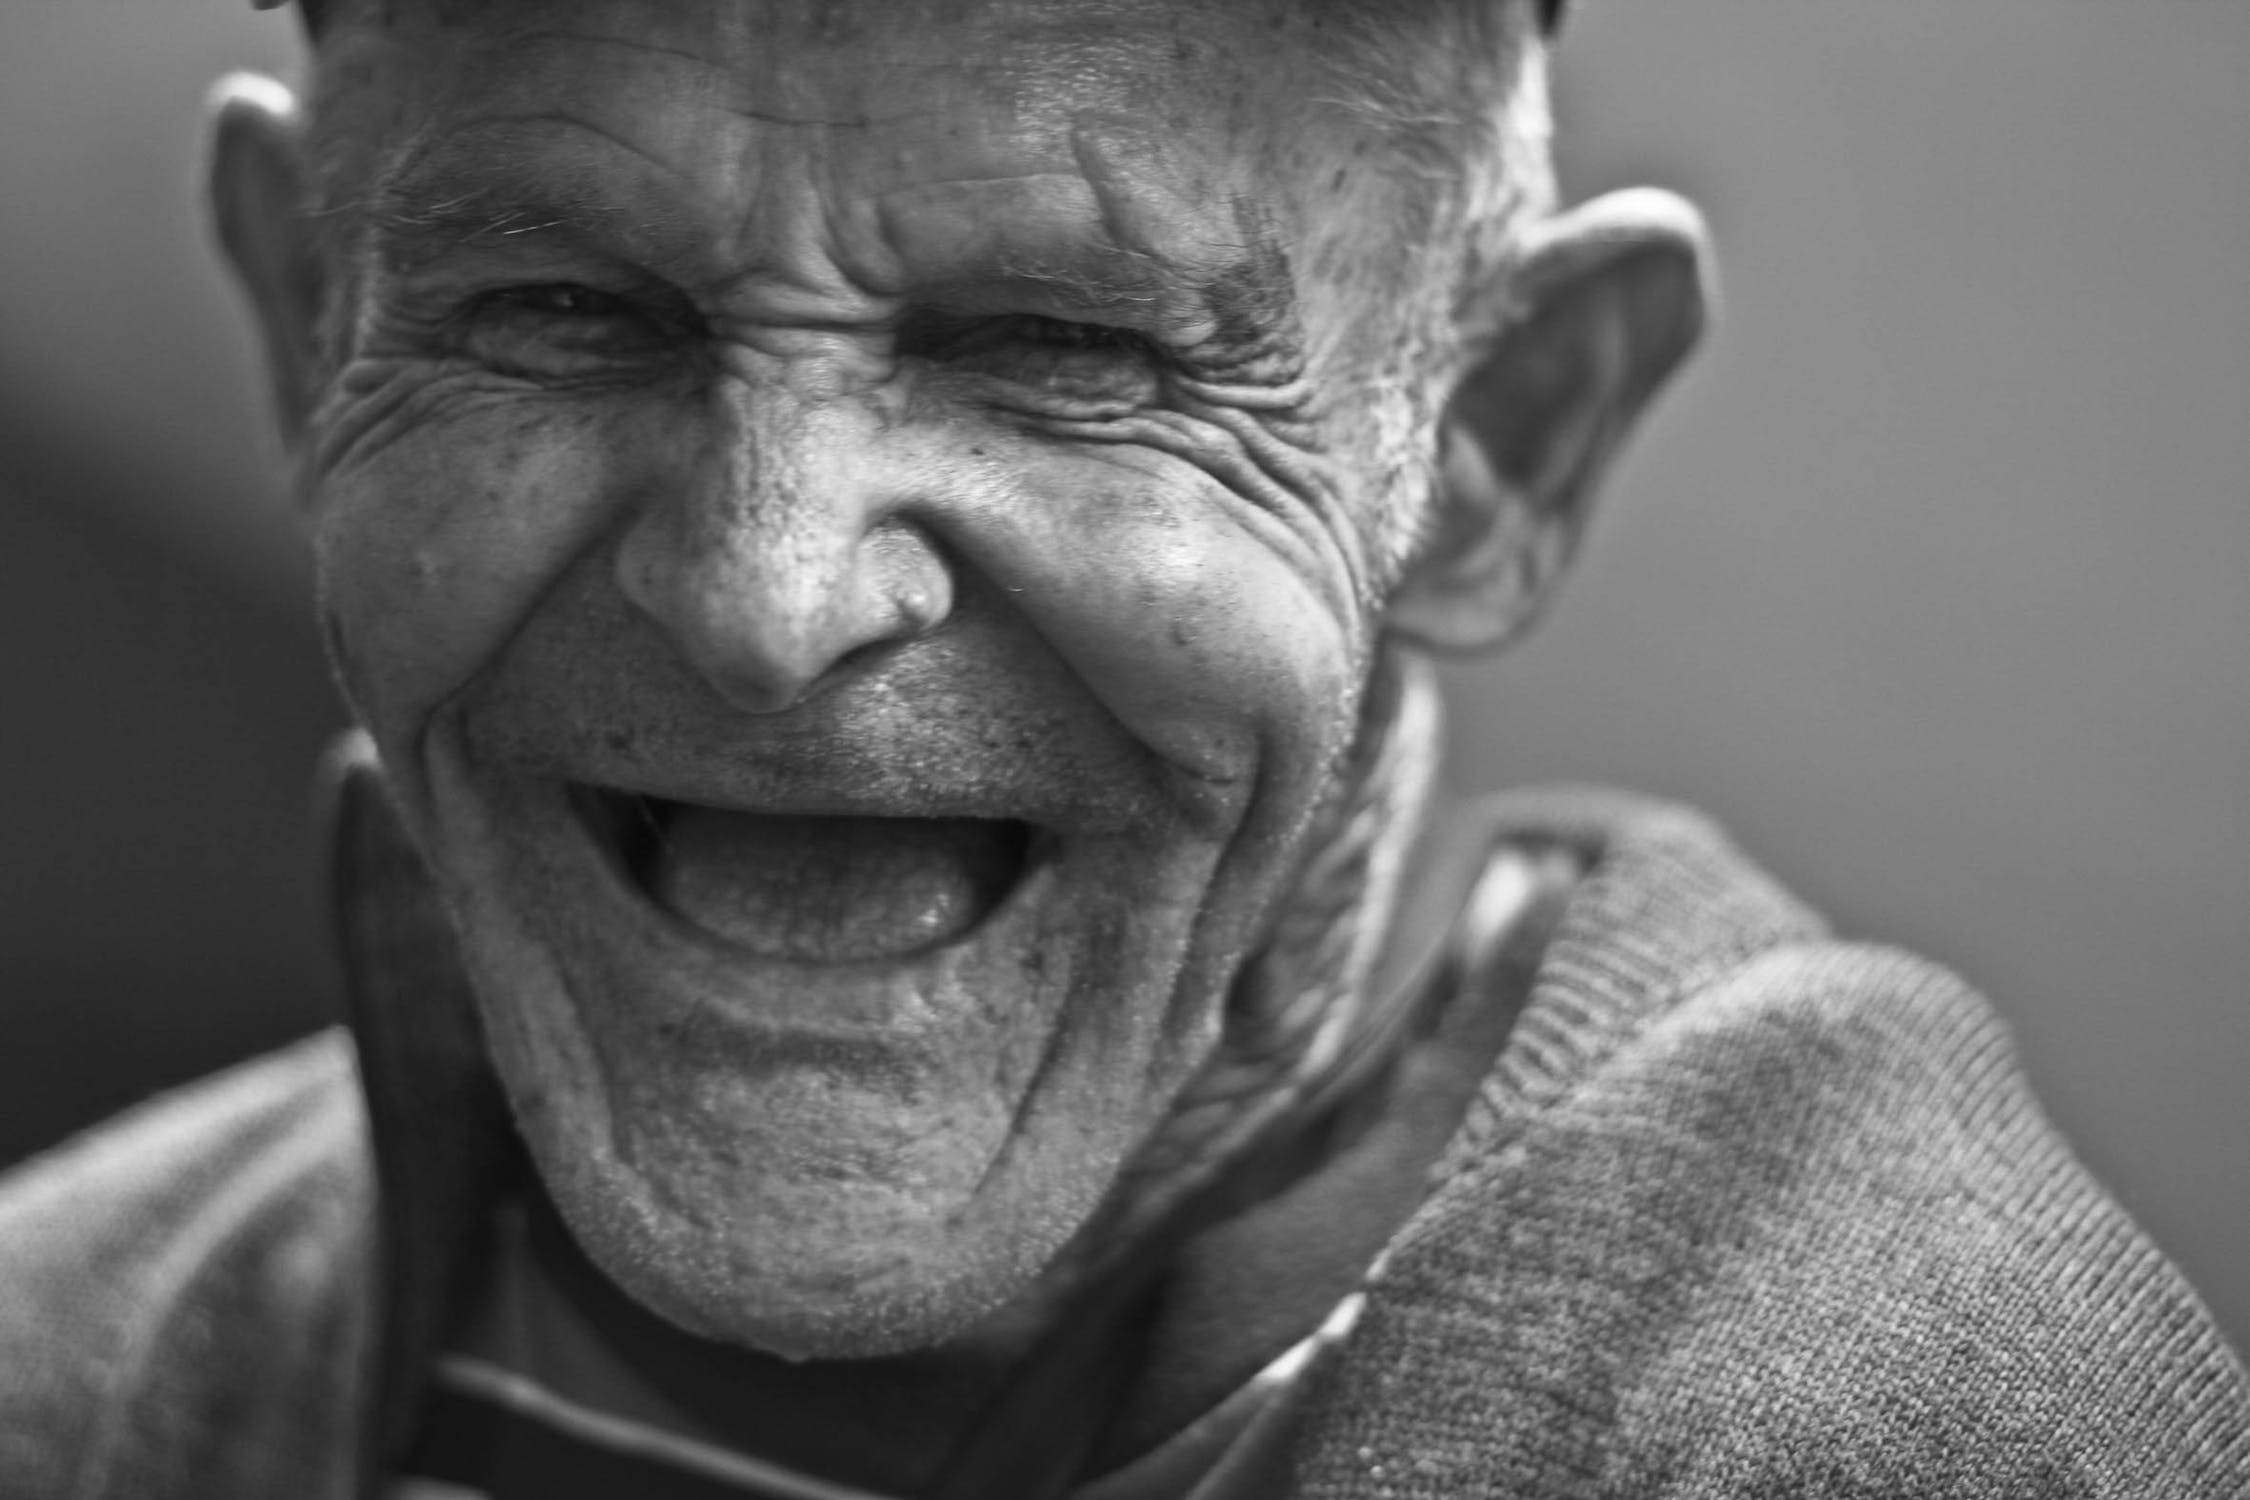 Stock photo of old man laughing.